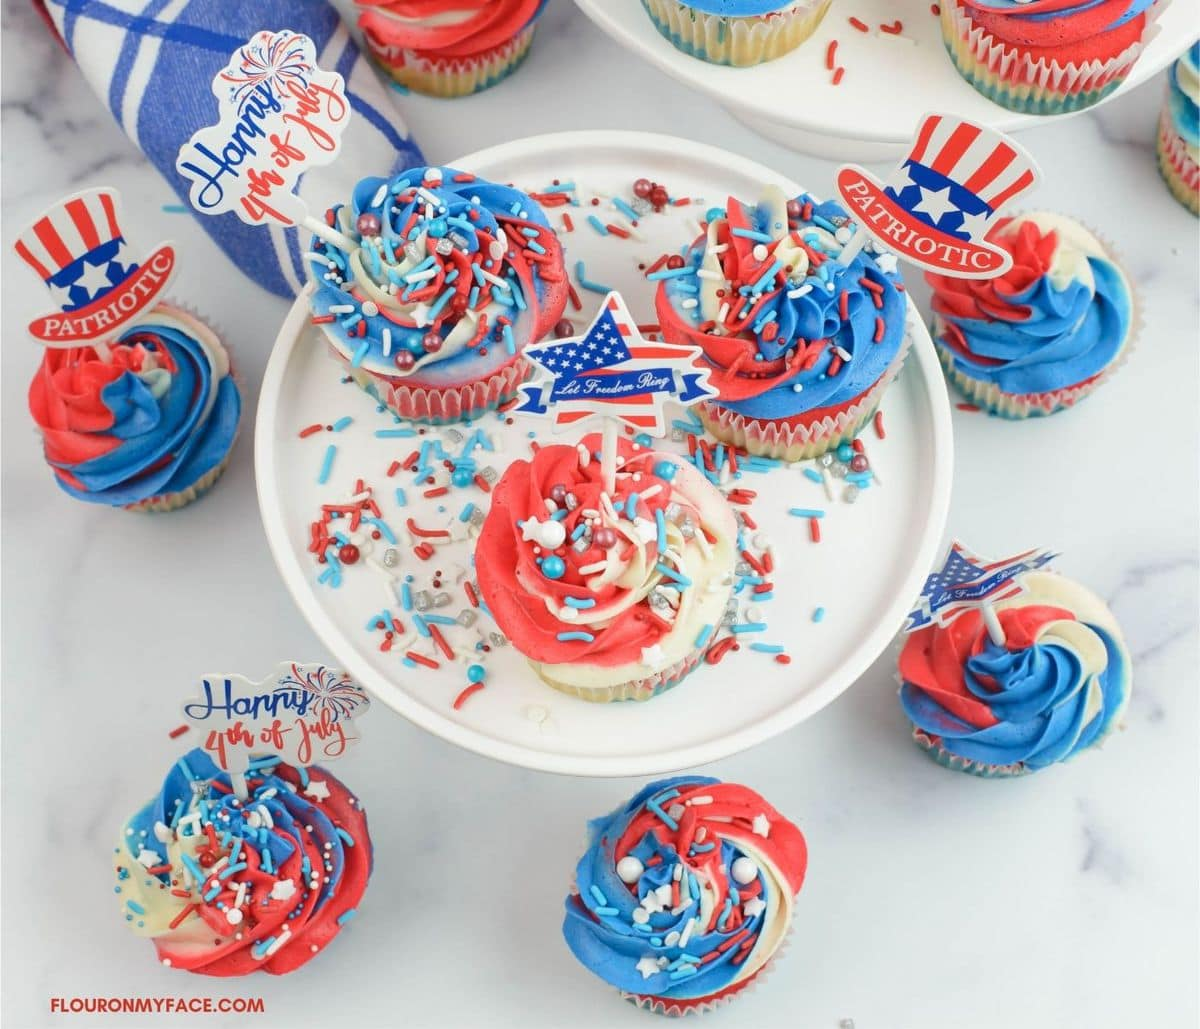 Overhead image of multi colored cupcakes to serve for the fourth of July.